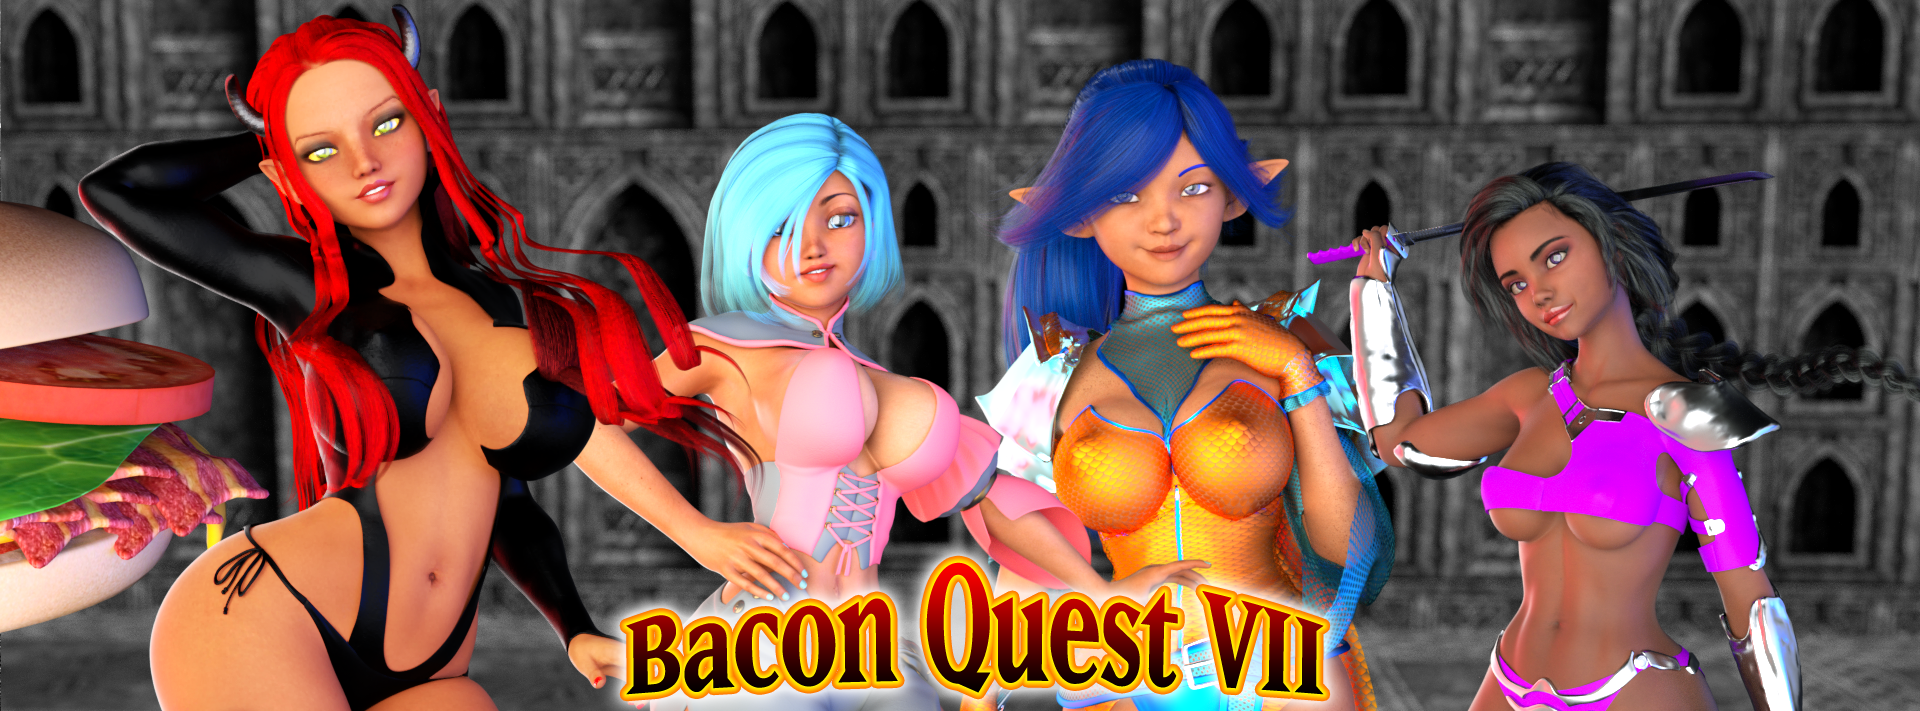 Bacon Quest VII: Lover's Beef